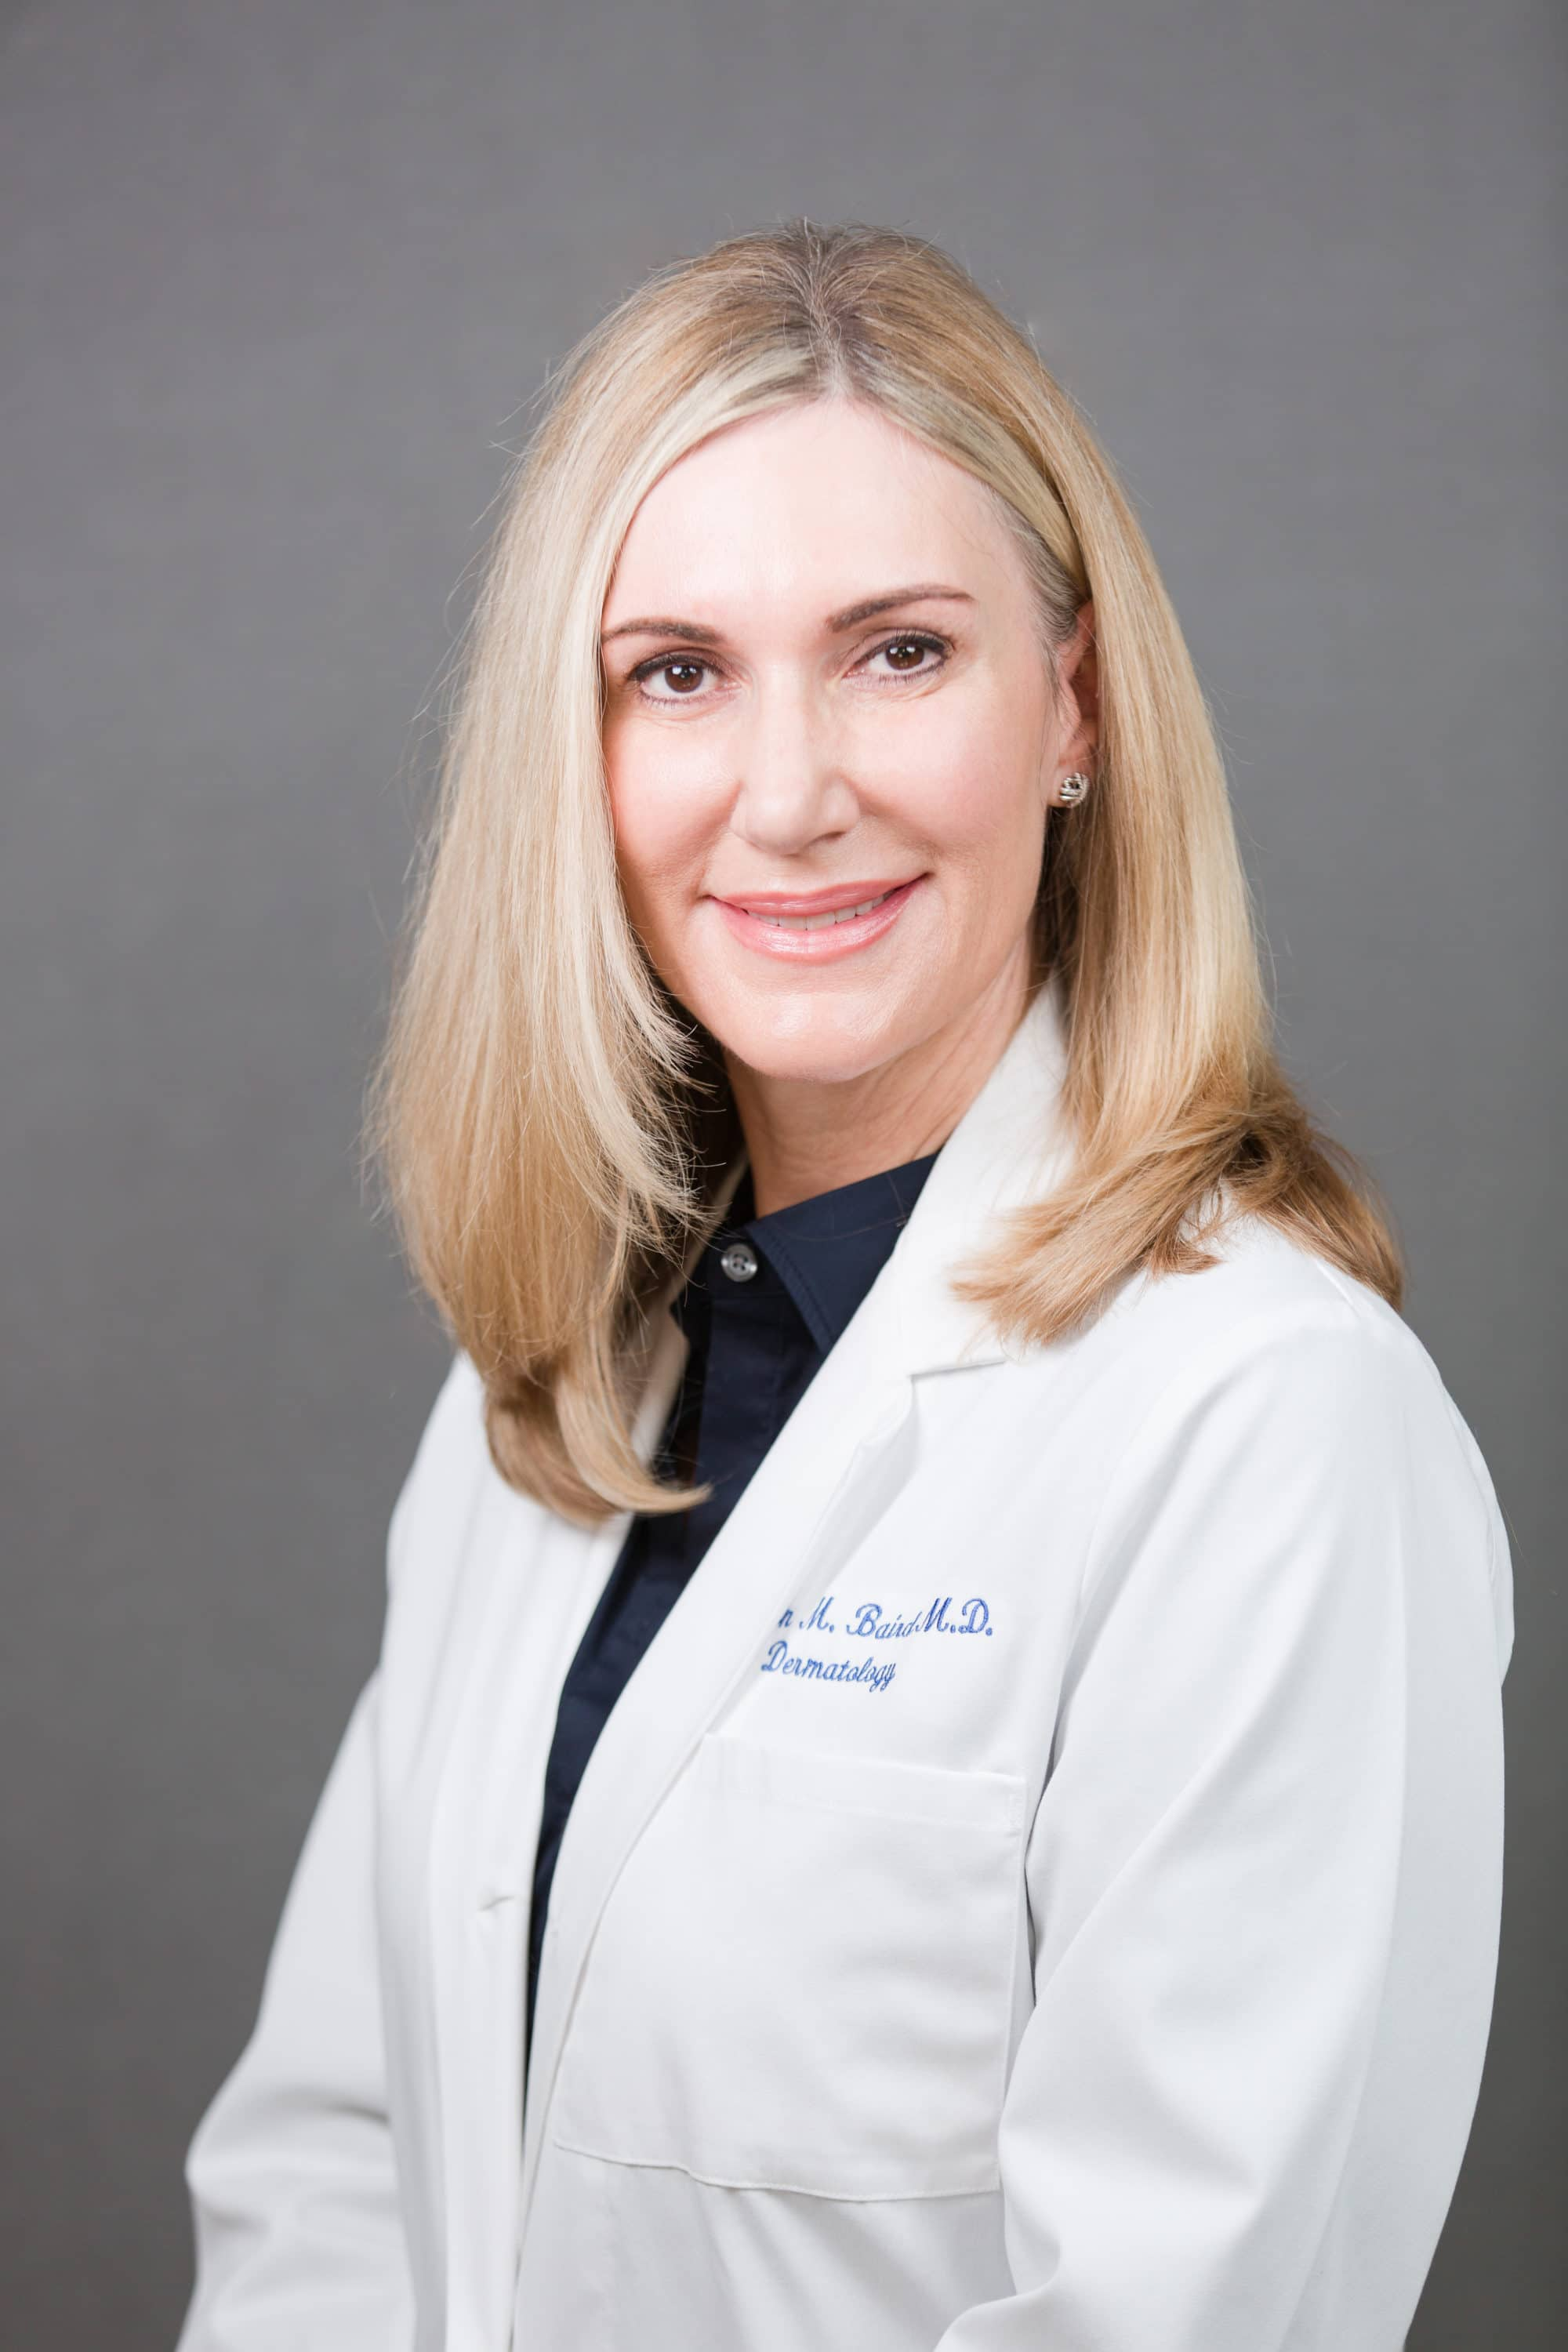 2019 dr. baird headshot white coat